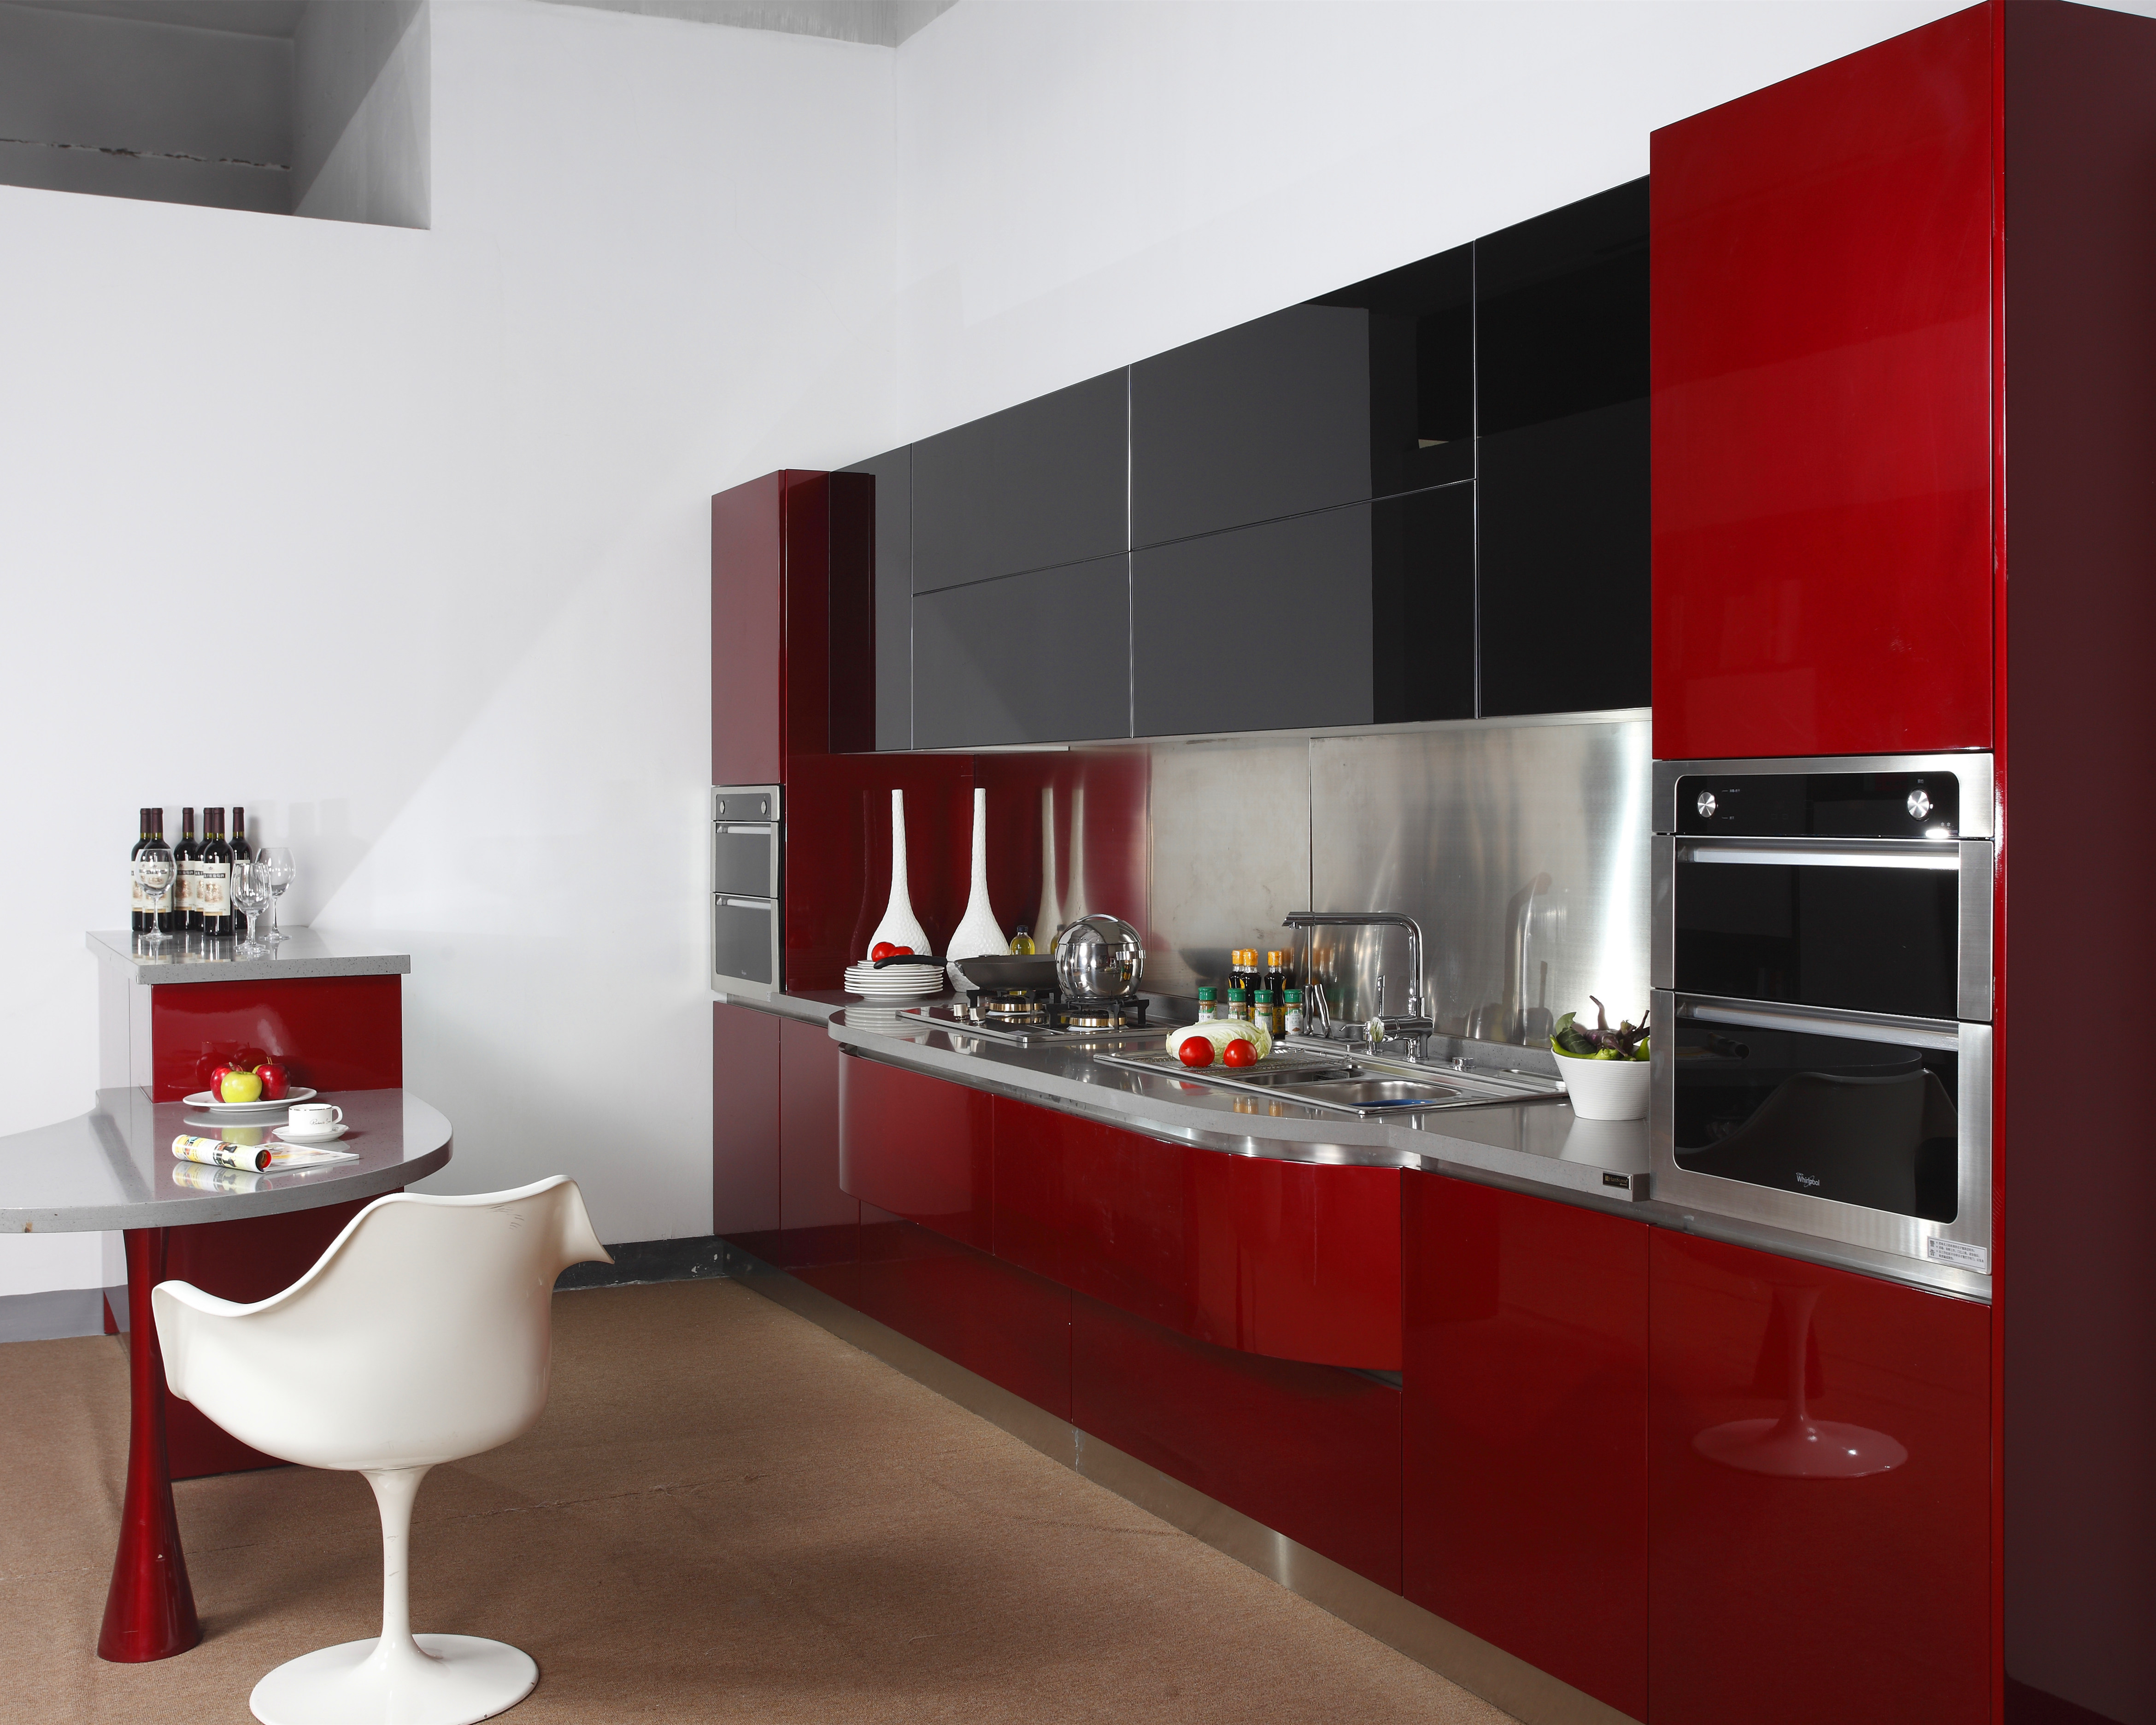 2019 New Red High Gloss Lacquer Kitchen Cabinet With Black Tempered Glass  Doors Kitchen Cabinets - Buy Round Kitchen Cabinets,Kitchen Wall Cabinets  ...